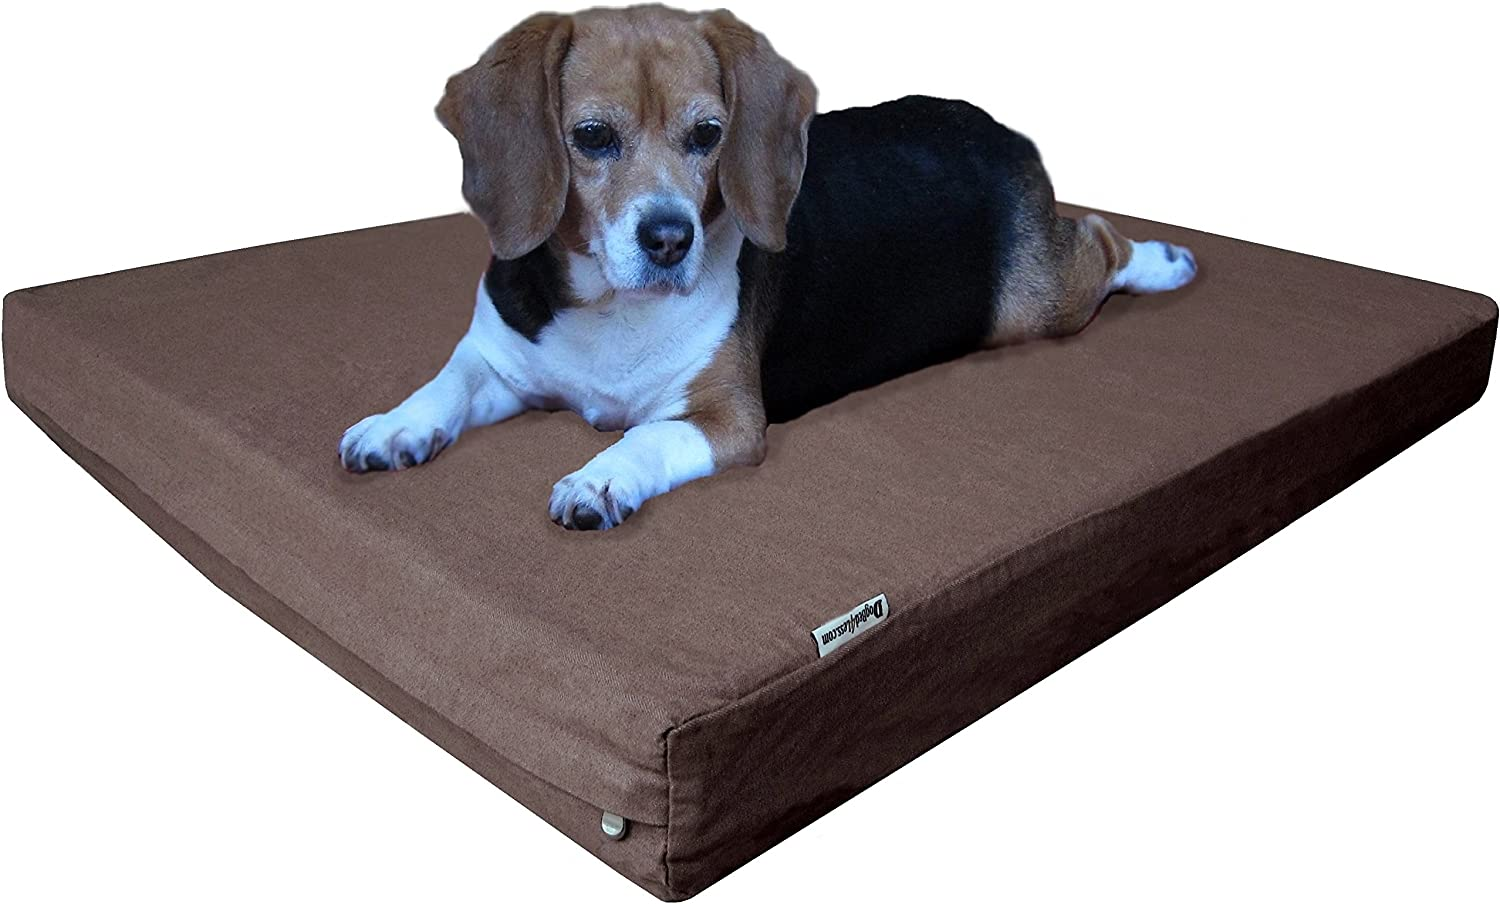 Dogbed4less Heavy Duty Orthopedic Small Medium Memory Foam Pet Bed with Waterproof Denim Cover + Free Extra Bonus case 35X20X4